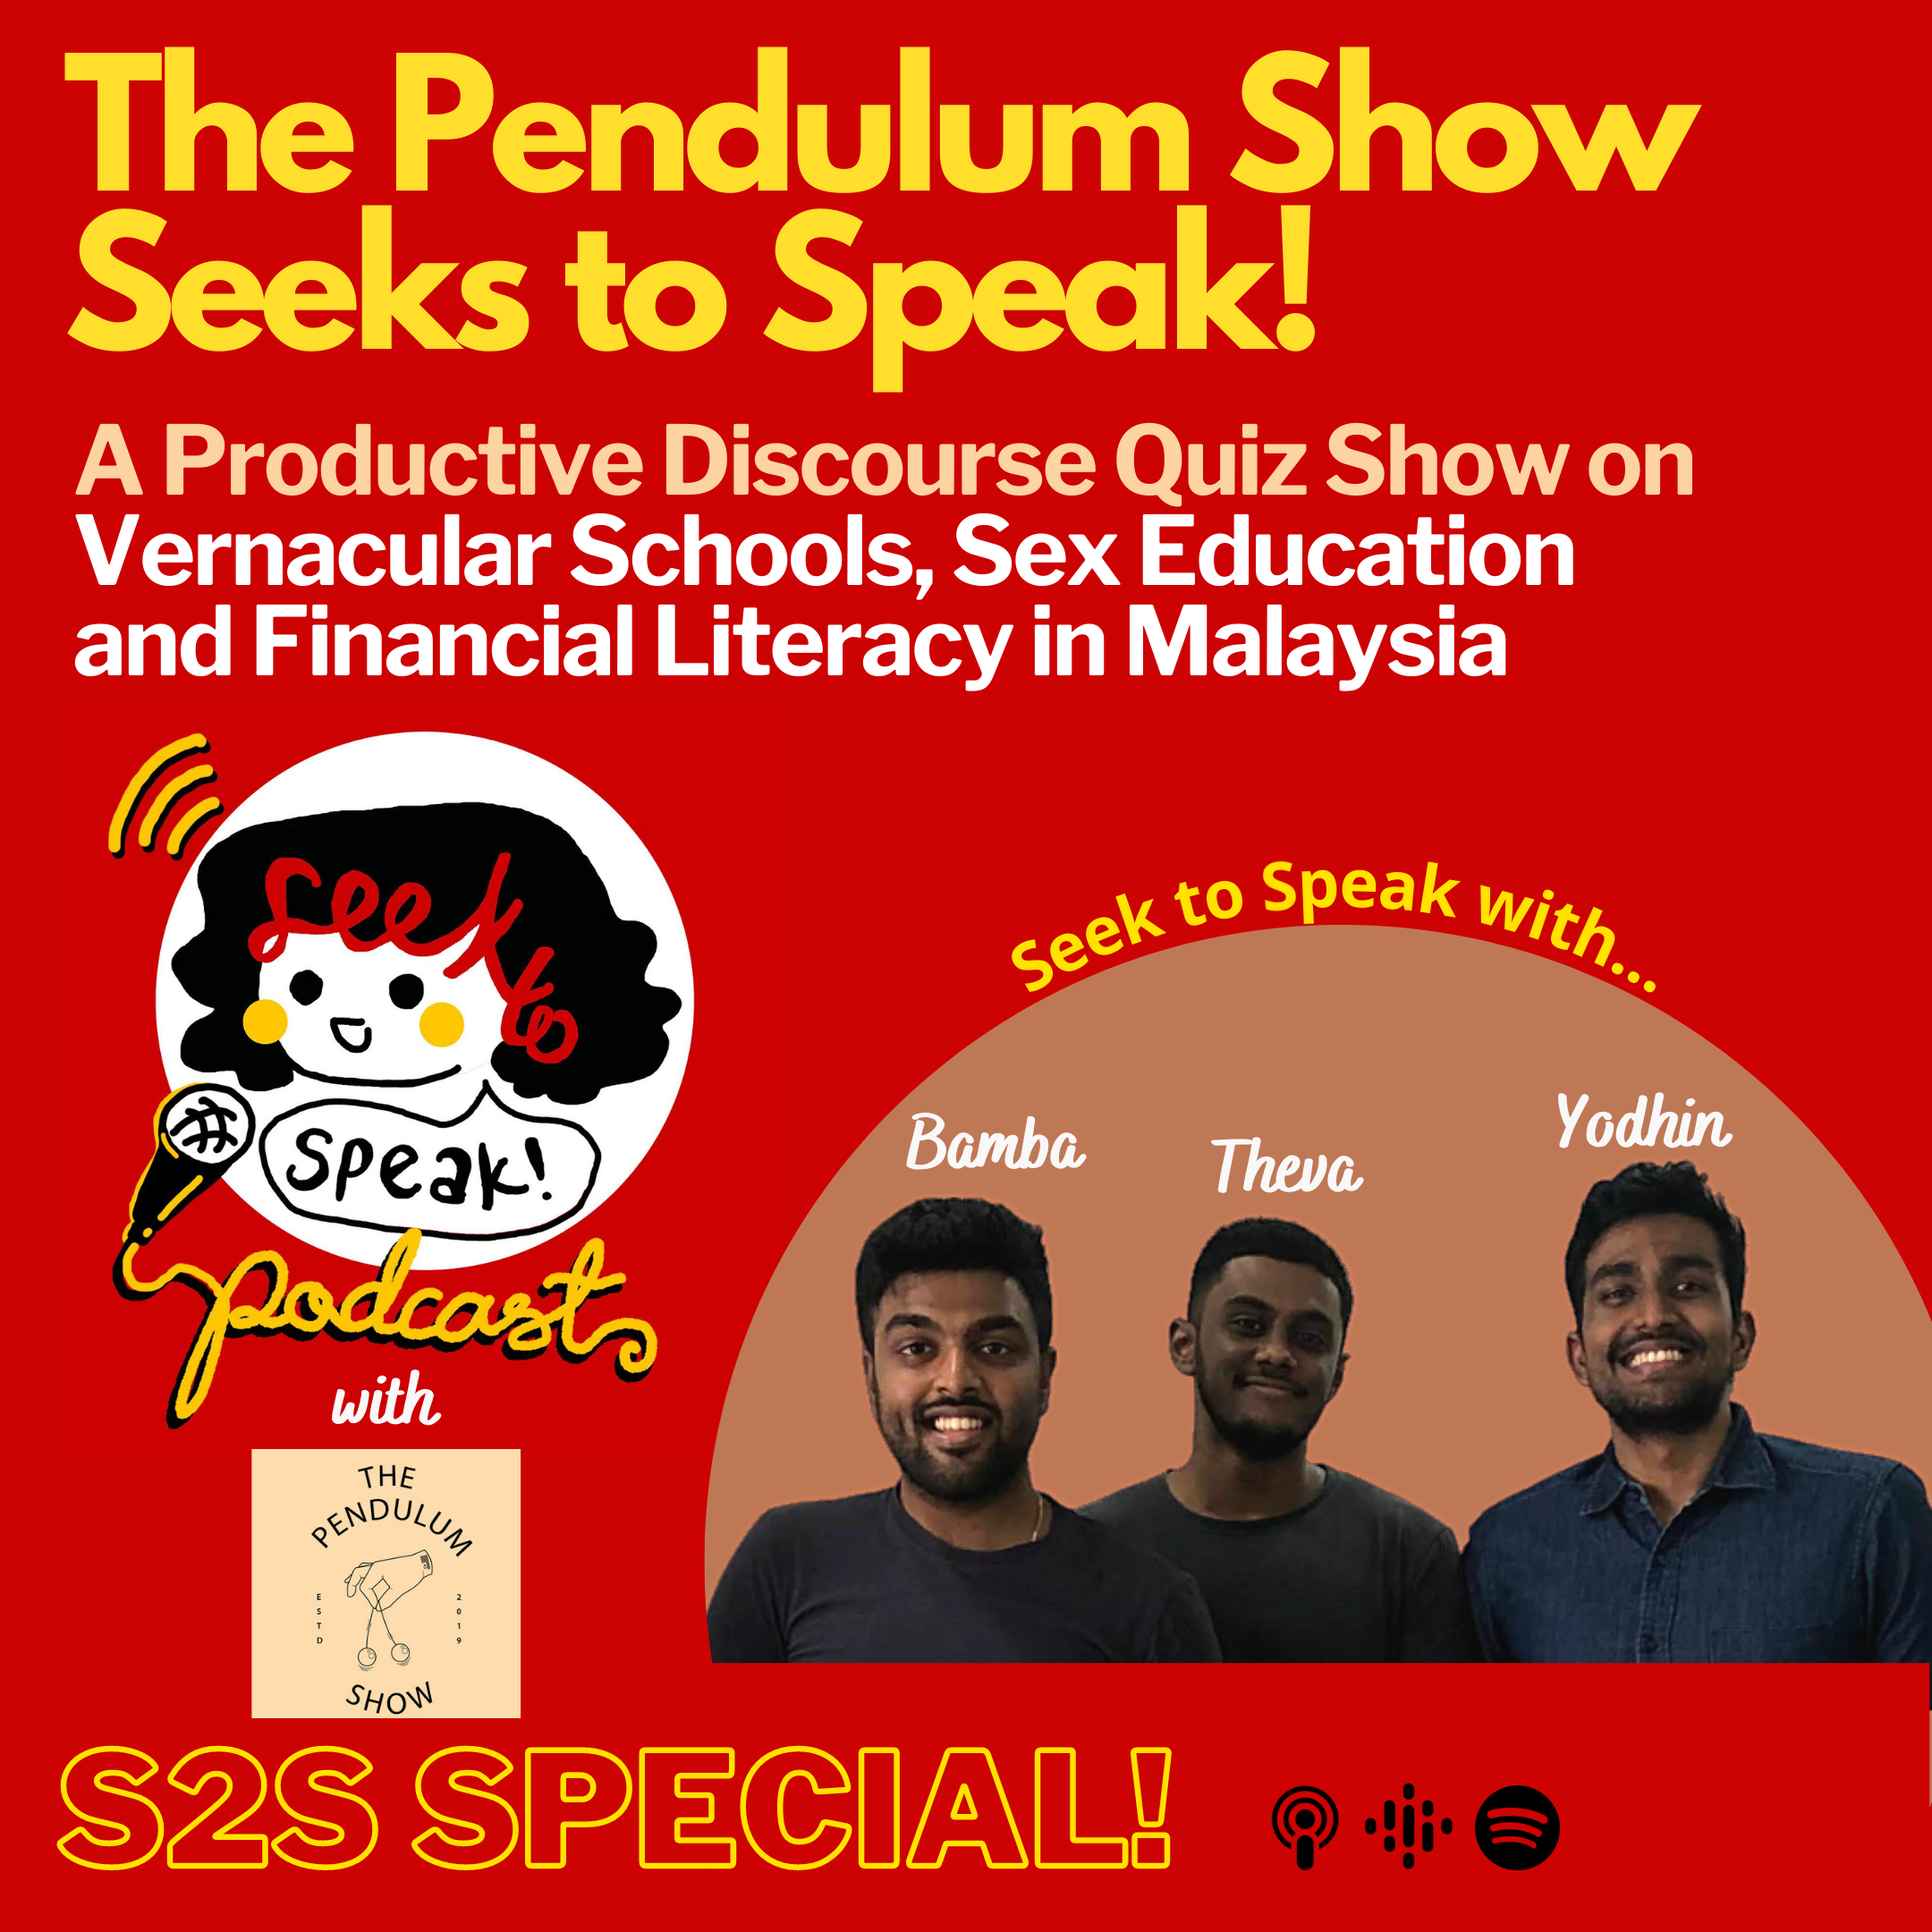 A Productive Discourse Quiz on Vernacular Schools, Sex Education, and Financial Literacy in Malaysia with the Pendulum Show